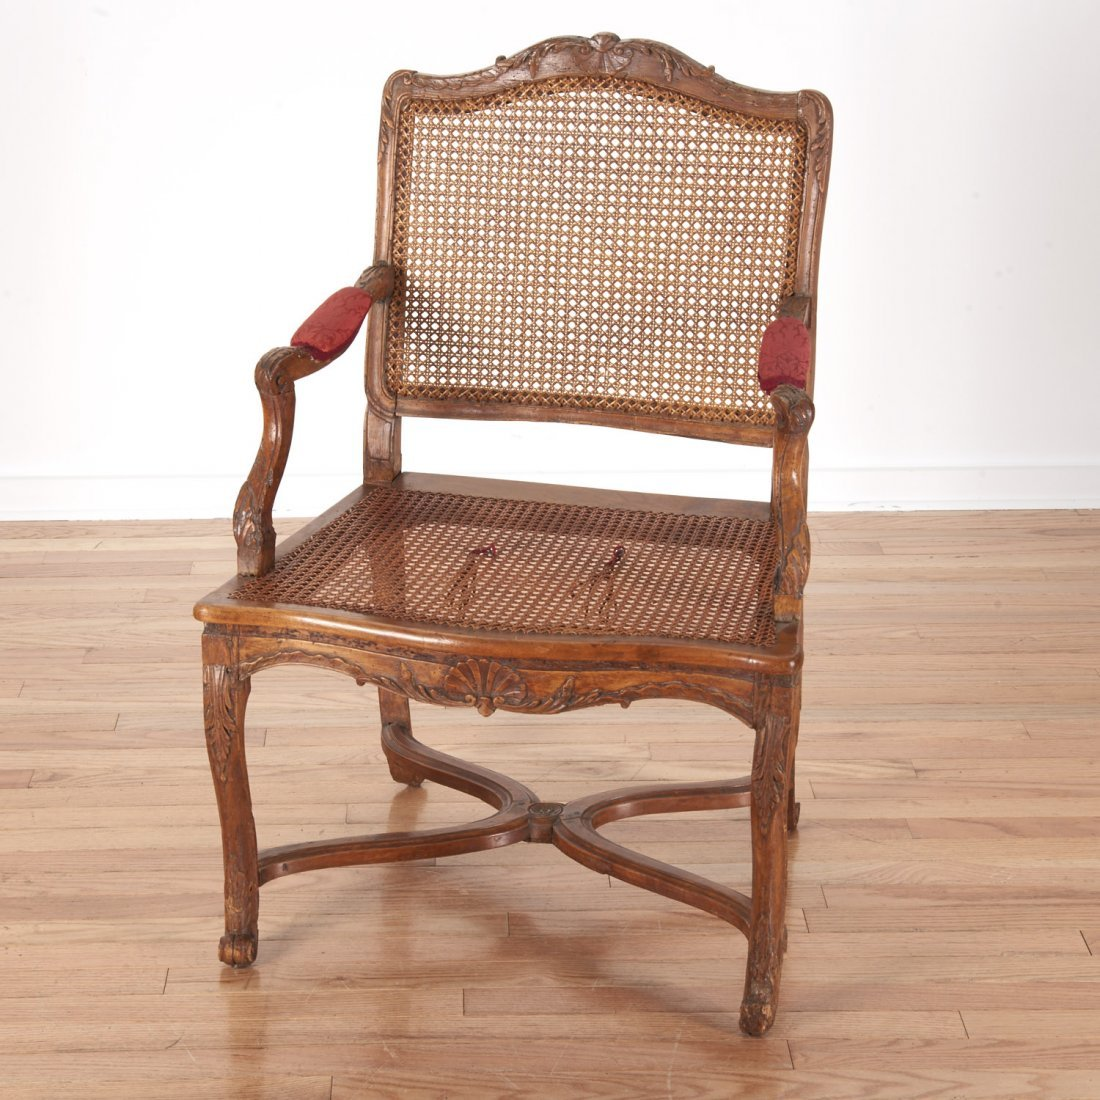 Pair Regence carved walnut open armchairs - 6